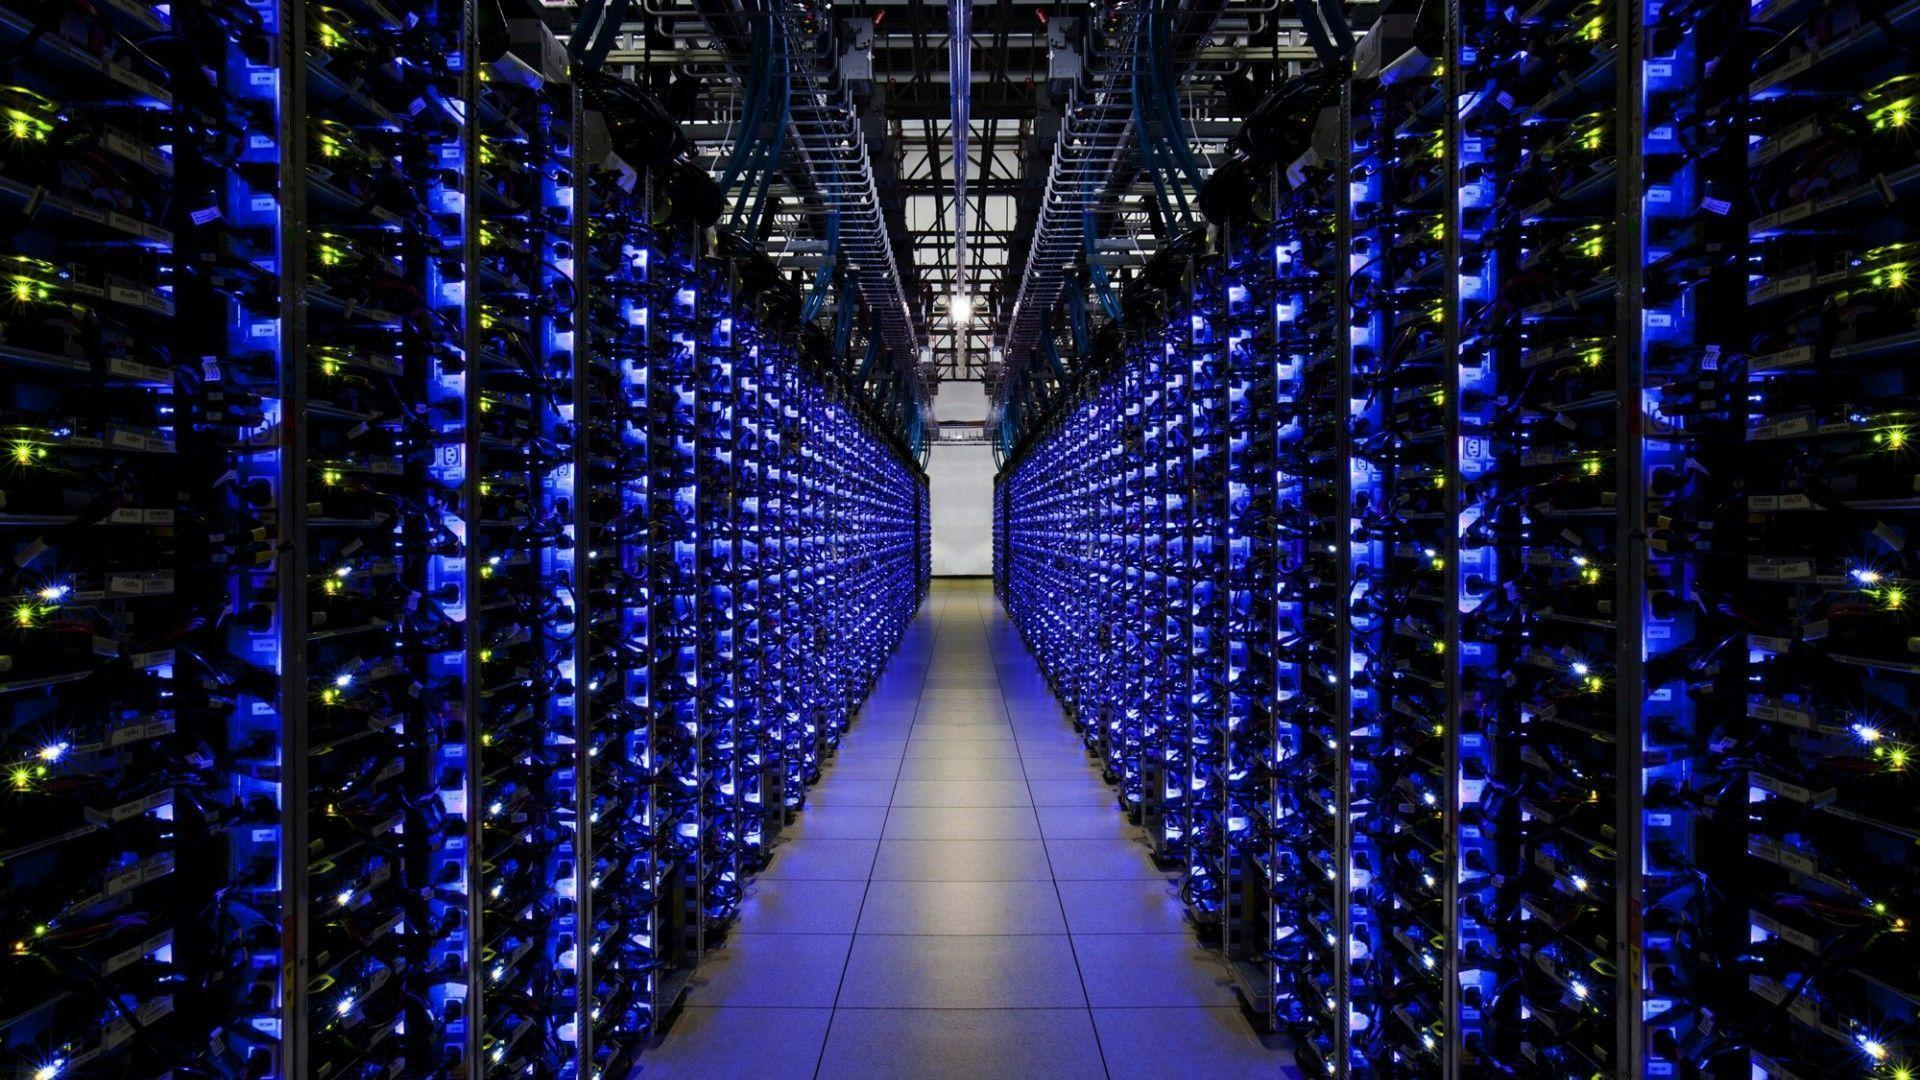 Server Room Wallpaper : Google data center wallpapers wallpaper cave